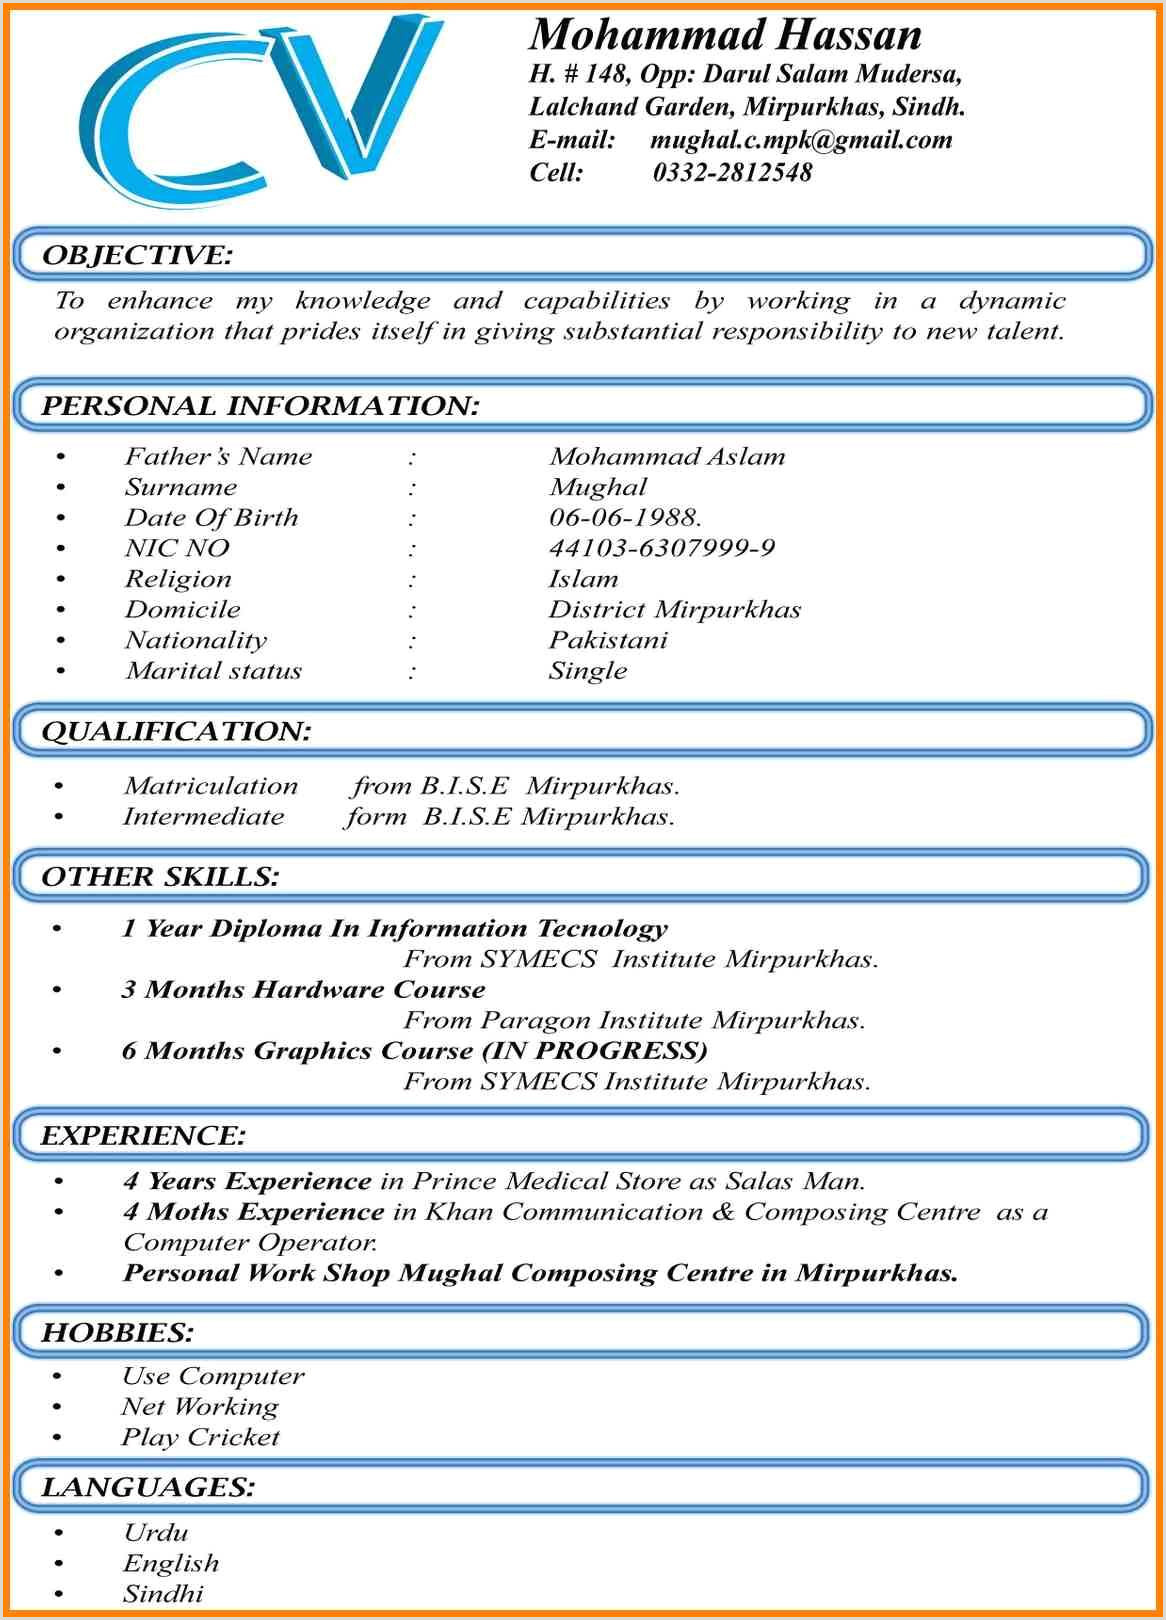 Curriculum Vitae format Download In Ms Word for Fresher Cv Word Document format Sandeep